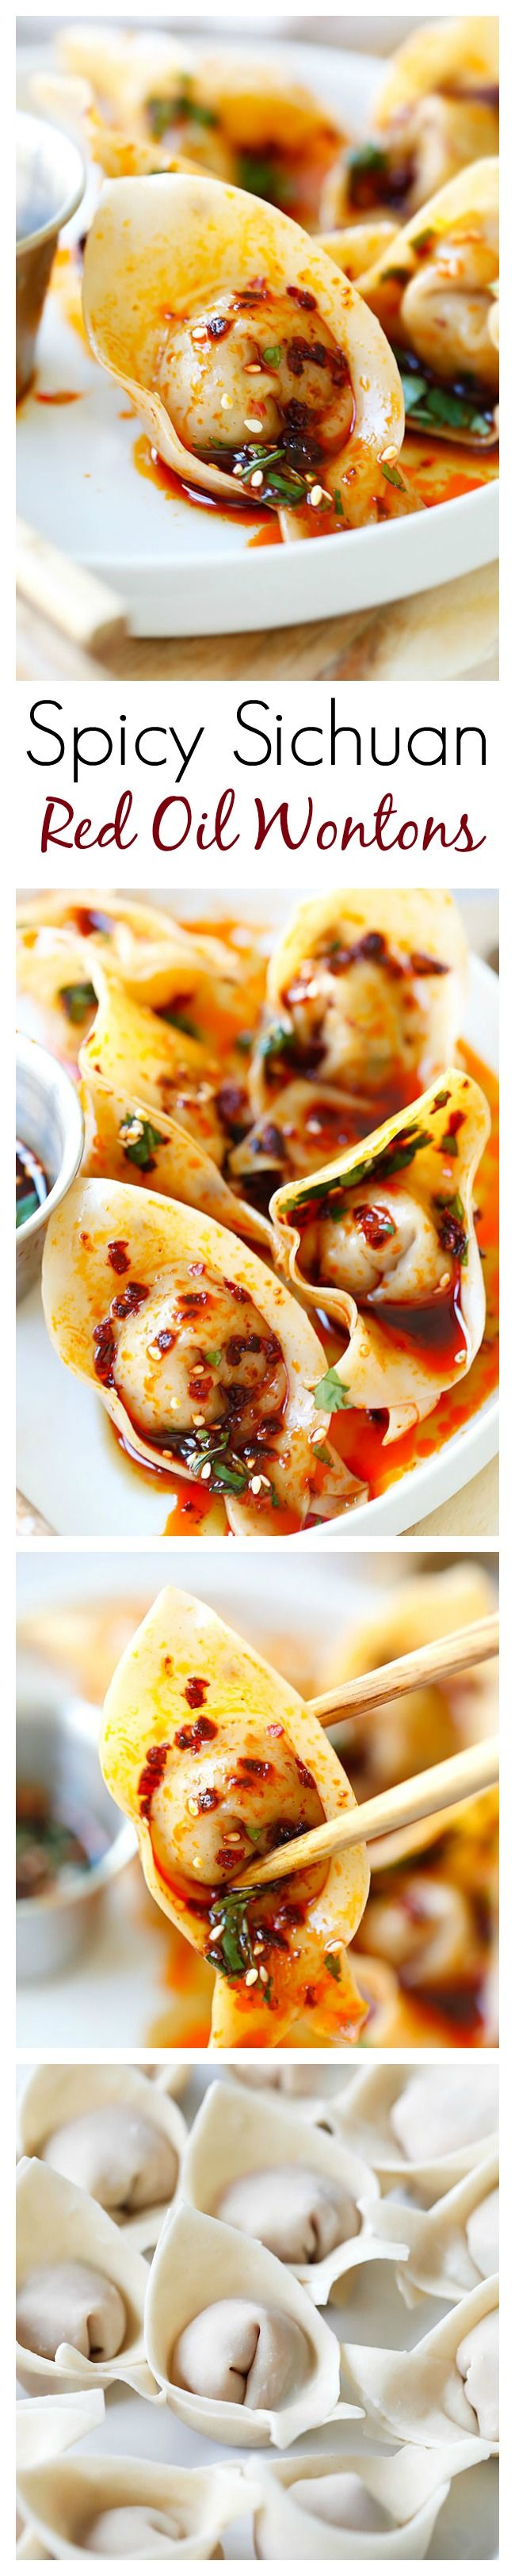 Sichuan Red Oil Wontons – delicious and mouthwatering spicy wontons in Sichuan red oil and black vinegar sauce. Easy recipe for homemade spicy wontons | rasamalaysia.com